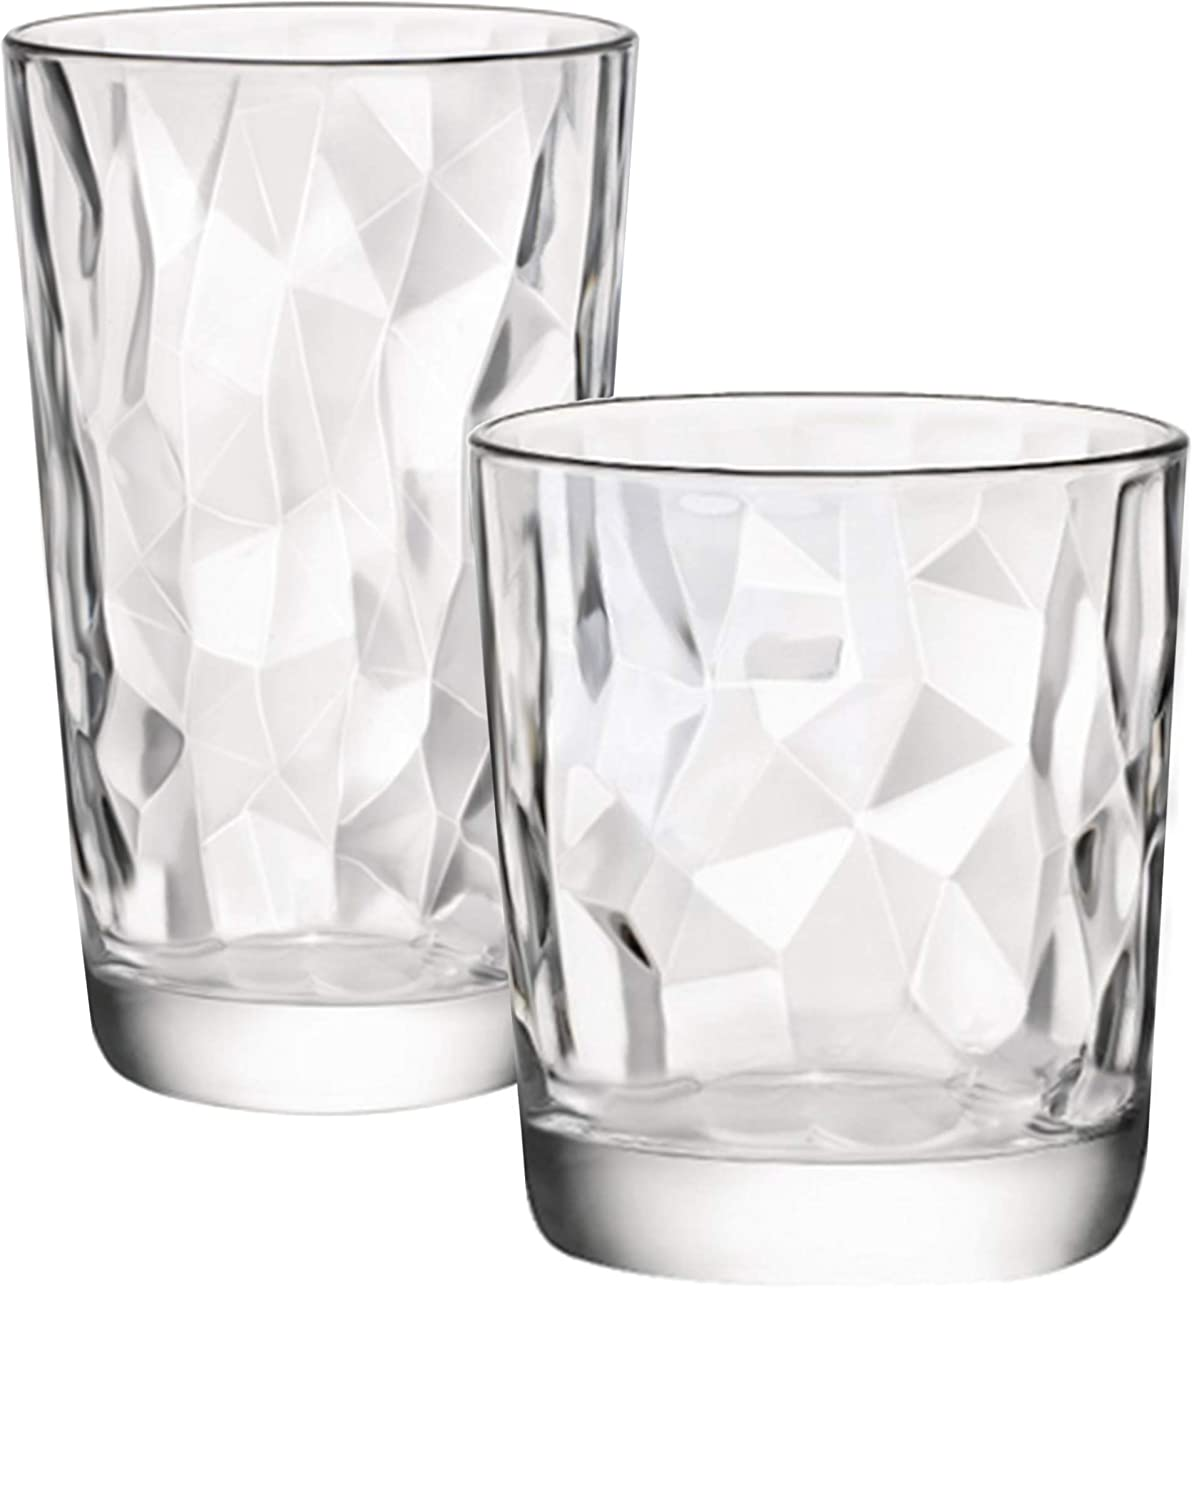 Circleware 40158 Cabrini Set of 12 Drinking Glasses & Whiskey Cups Glassware for Water, Beer, Juice, Ice Tea Beverage, 6-15.7 oz & 6-12.5 oz